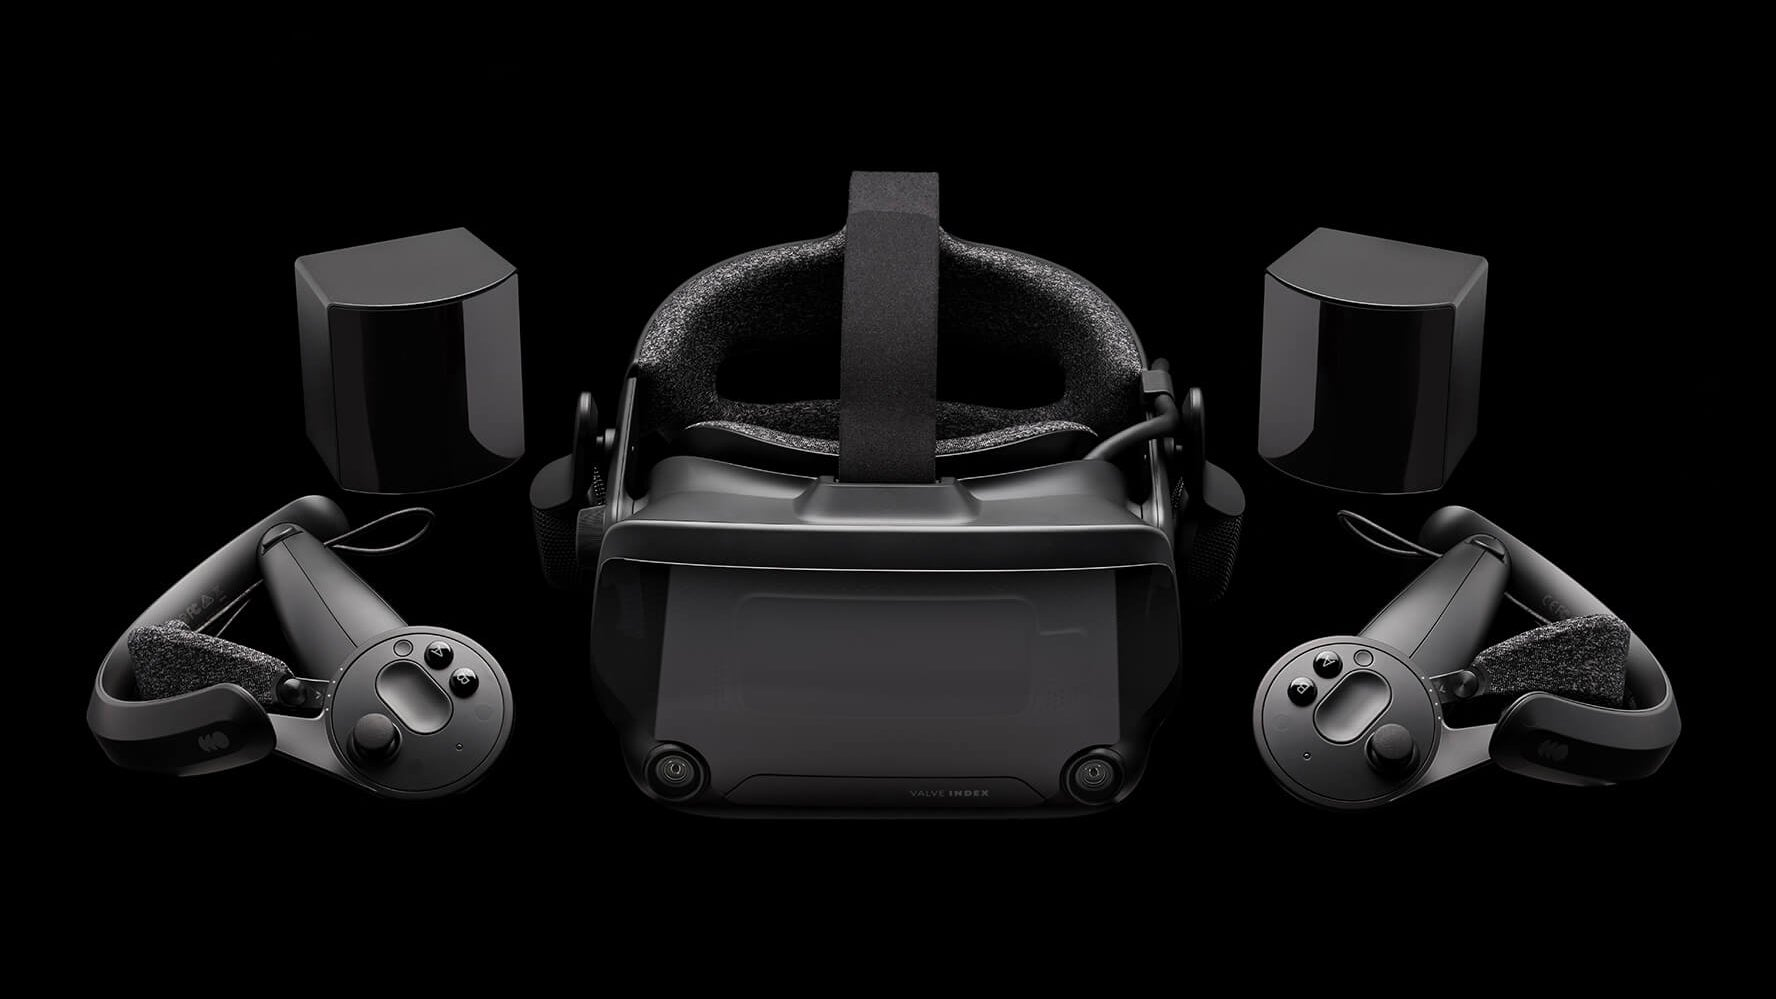 Valve's Index VR Headset Ships In June, Full Set Costs Over $1400